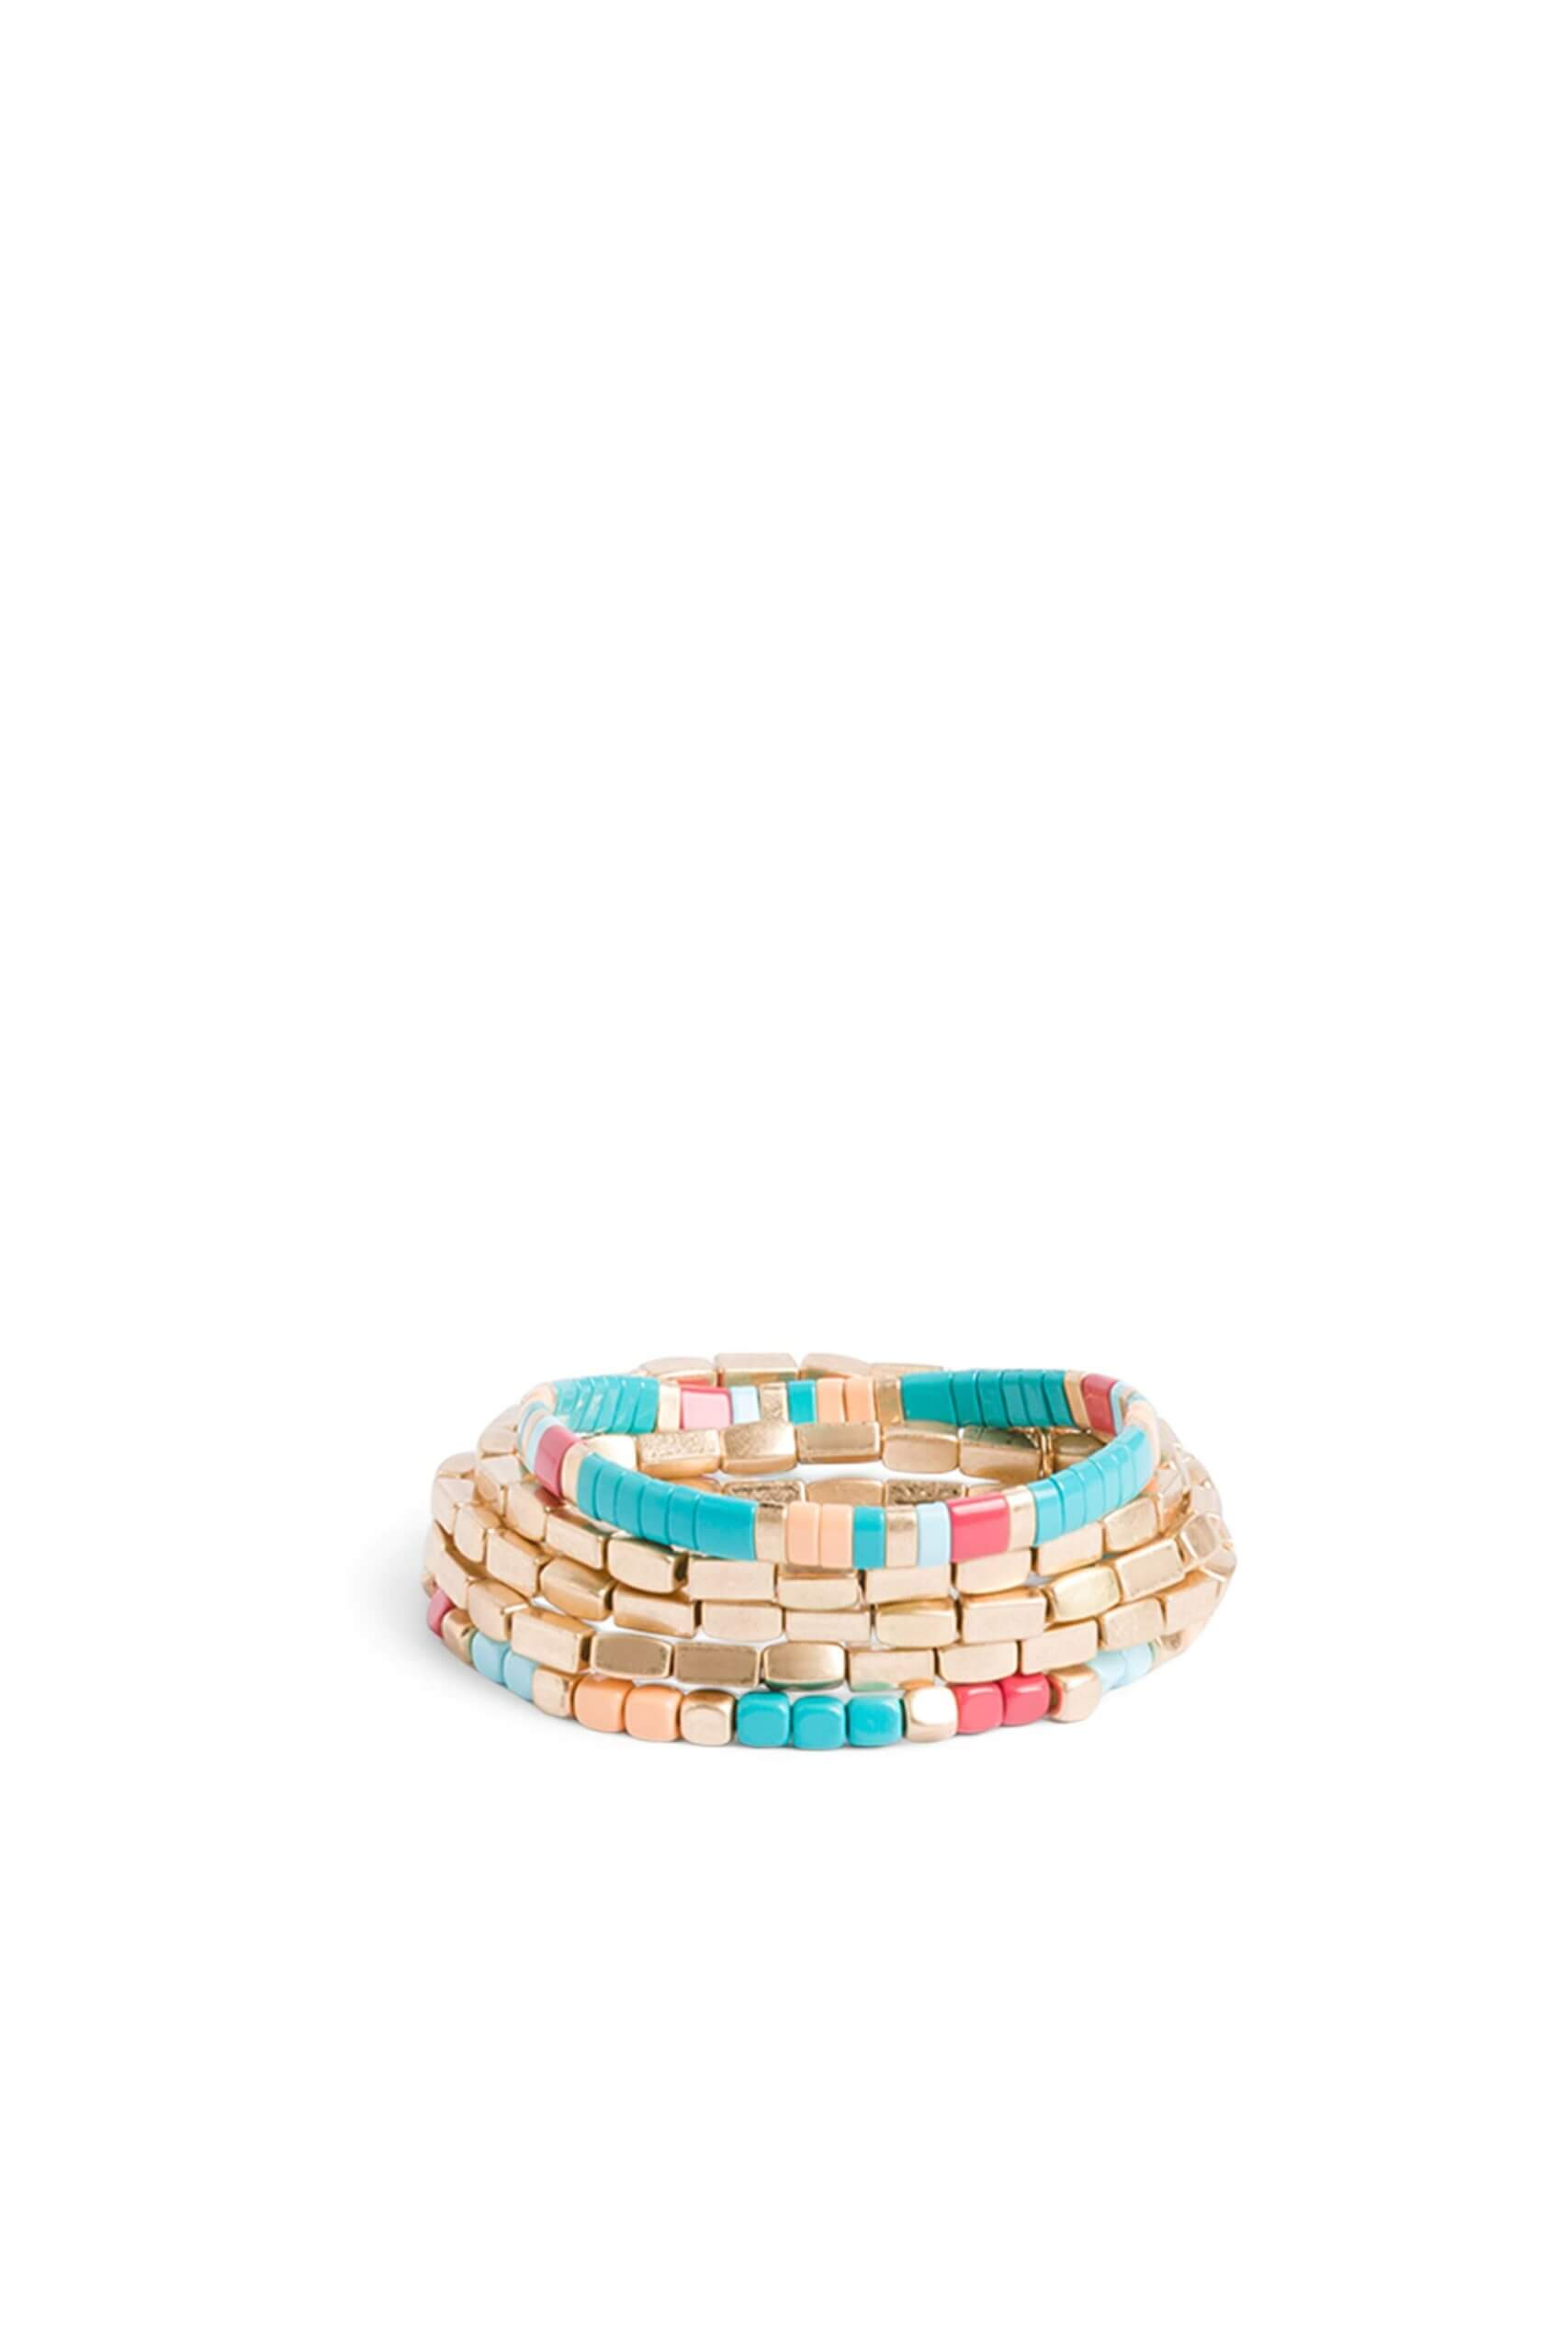 Stitch Fix women's five strand mixed material bracelet in gold, pink and turquoise.